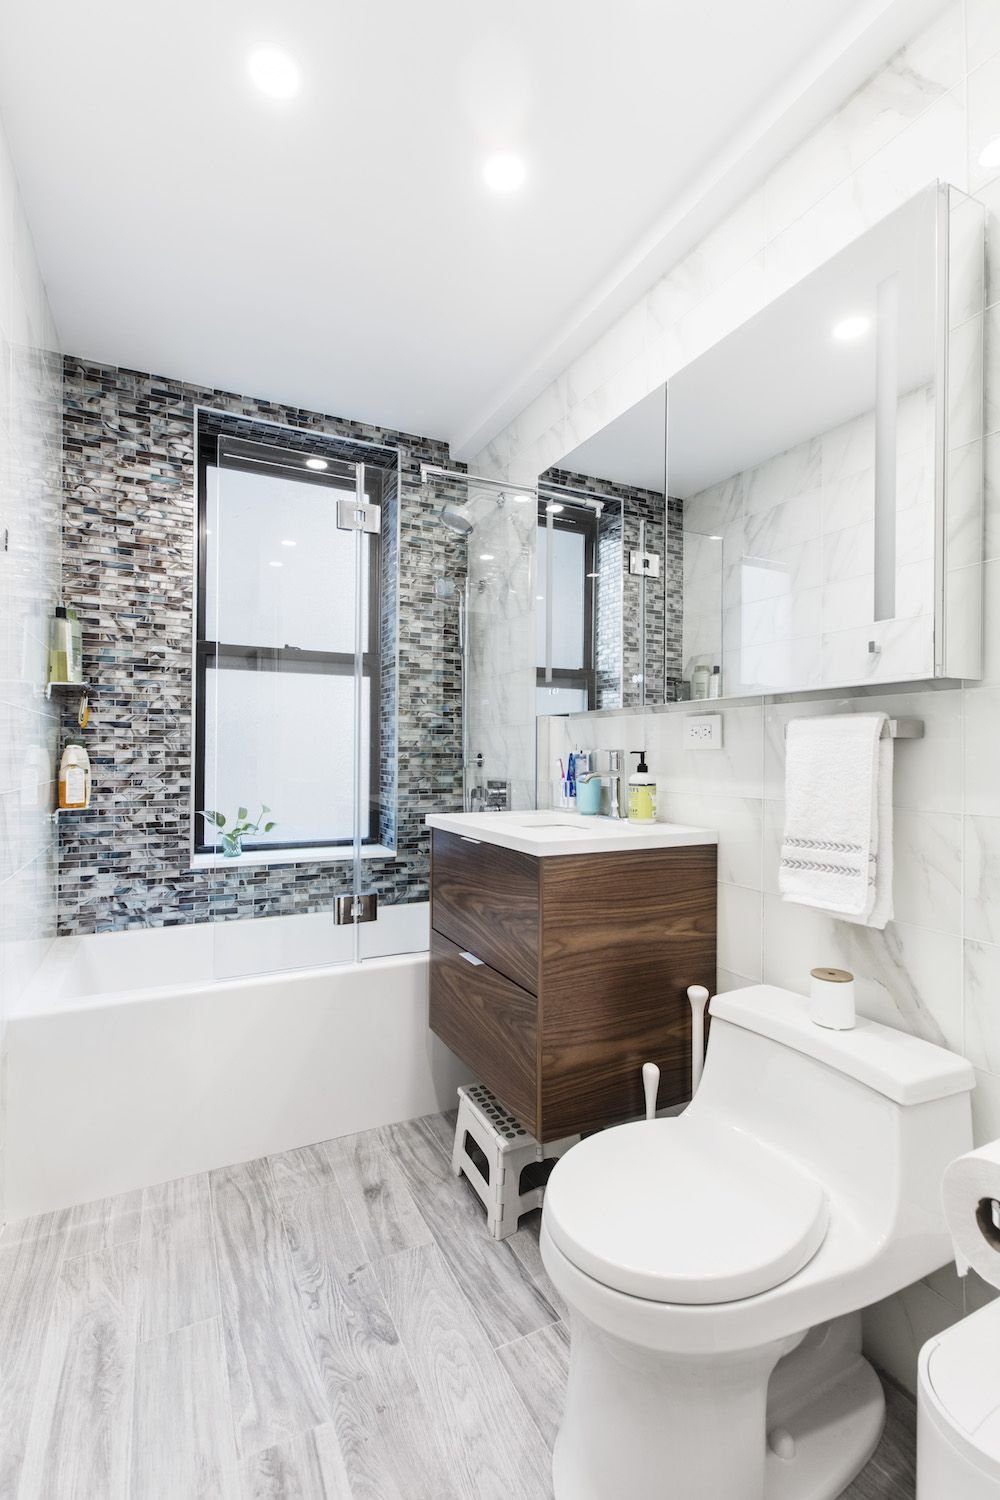 Renovators Return To Complete Their Bathroom Renovation In Queens White Subway Tile Shower Glass Bathroom Bathroom Renovation